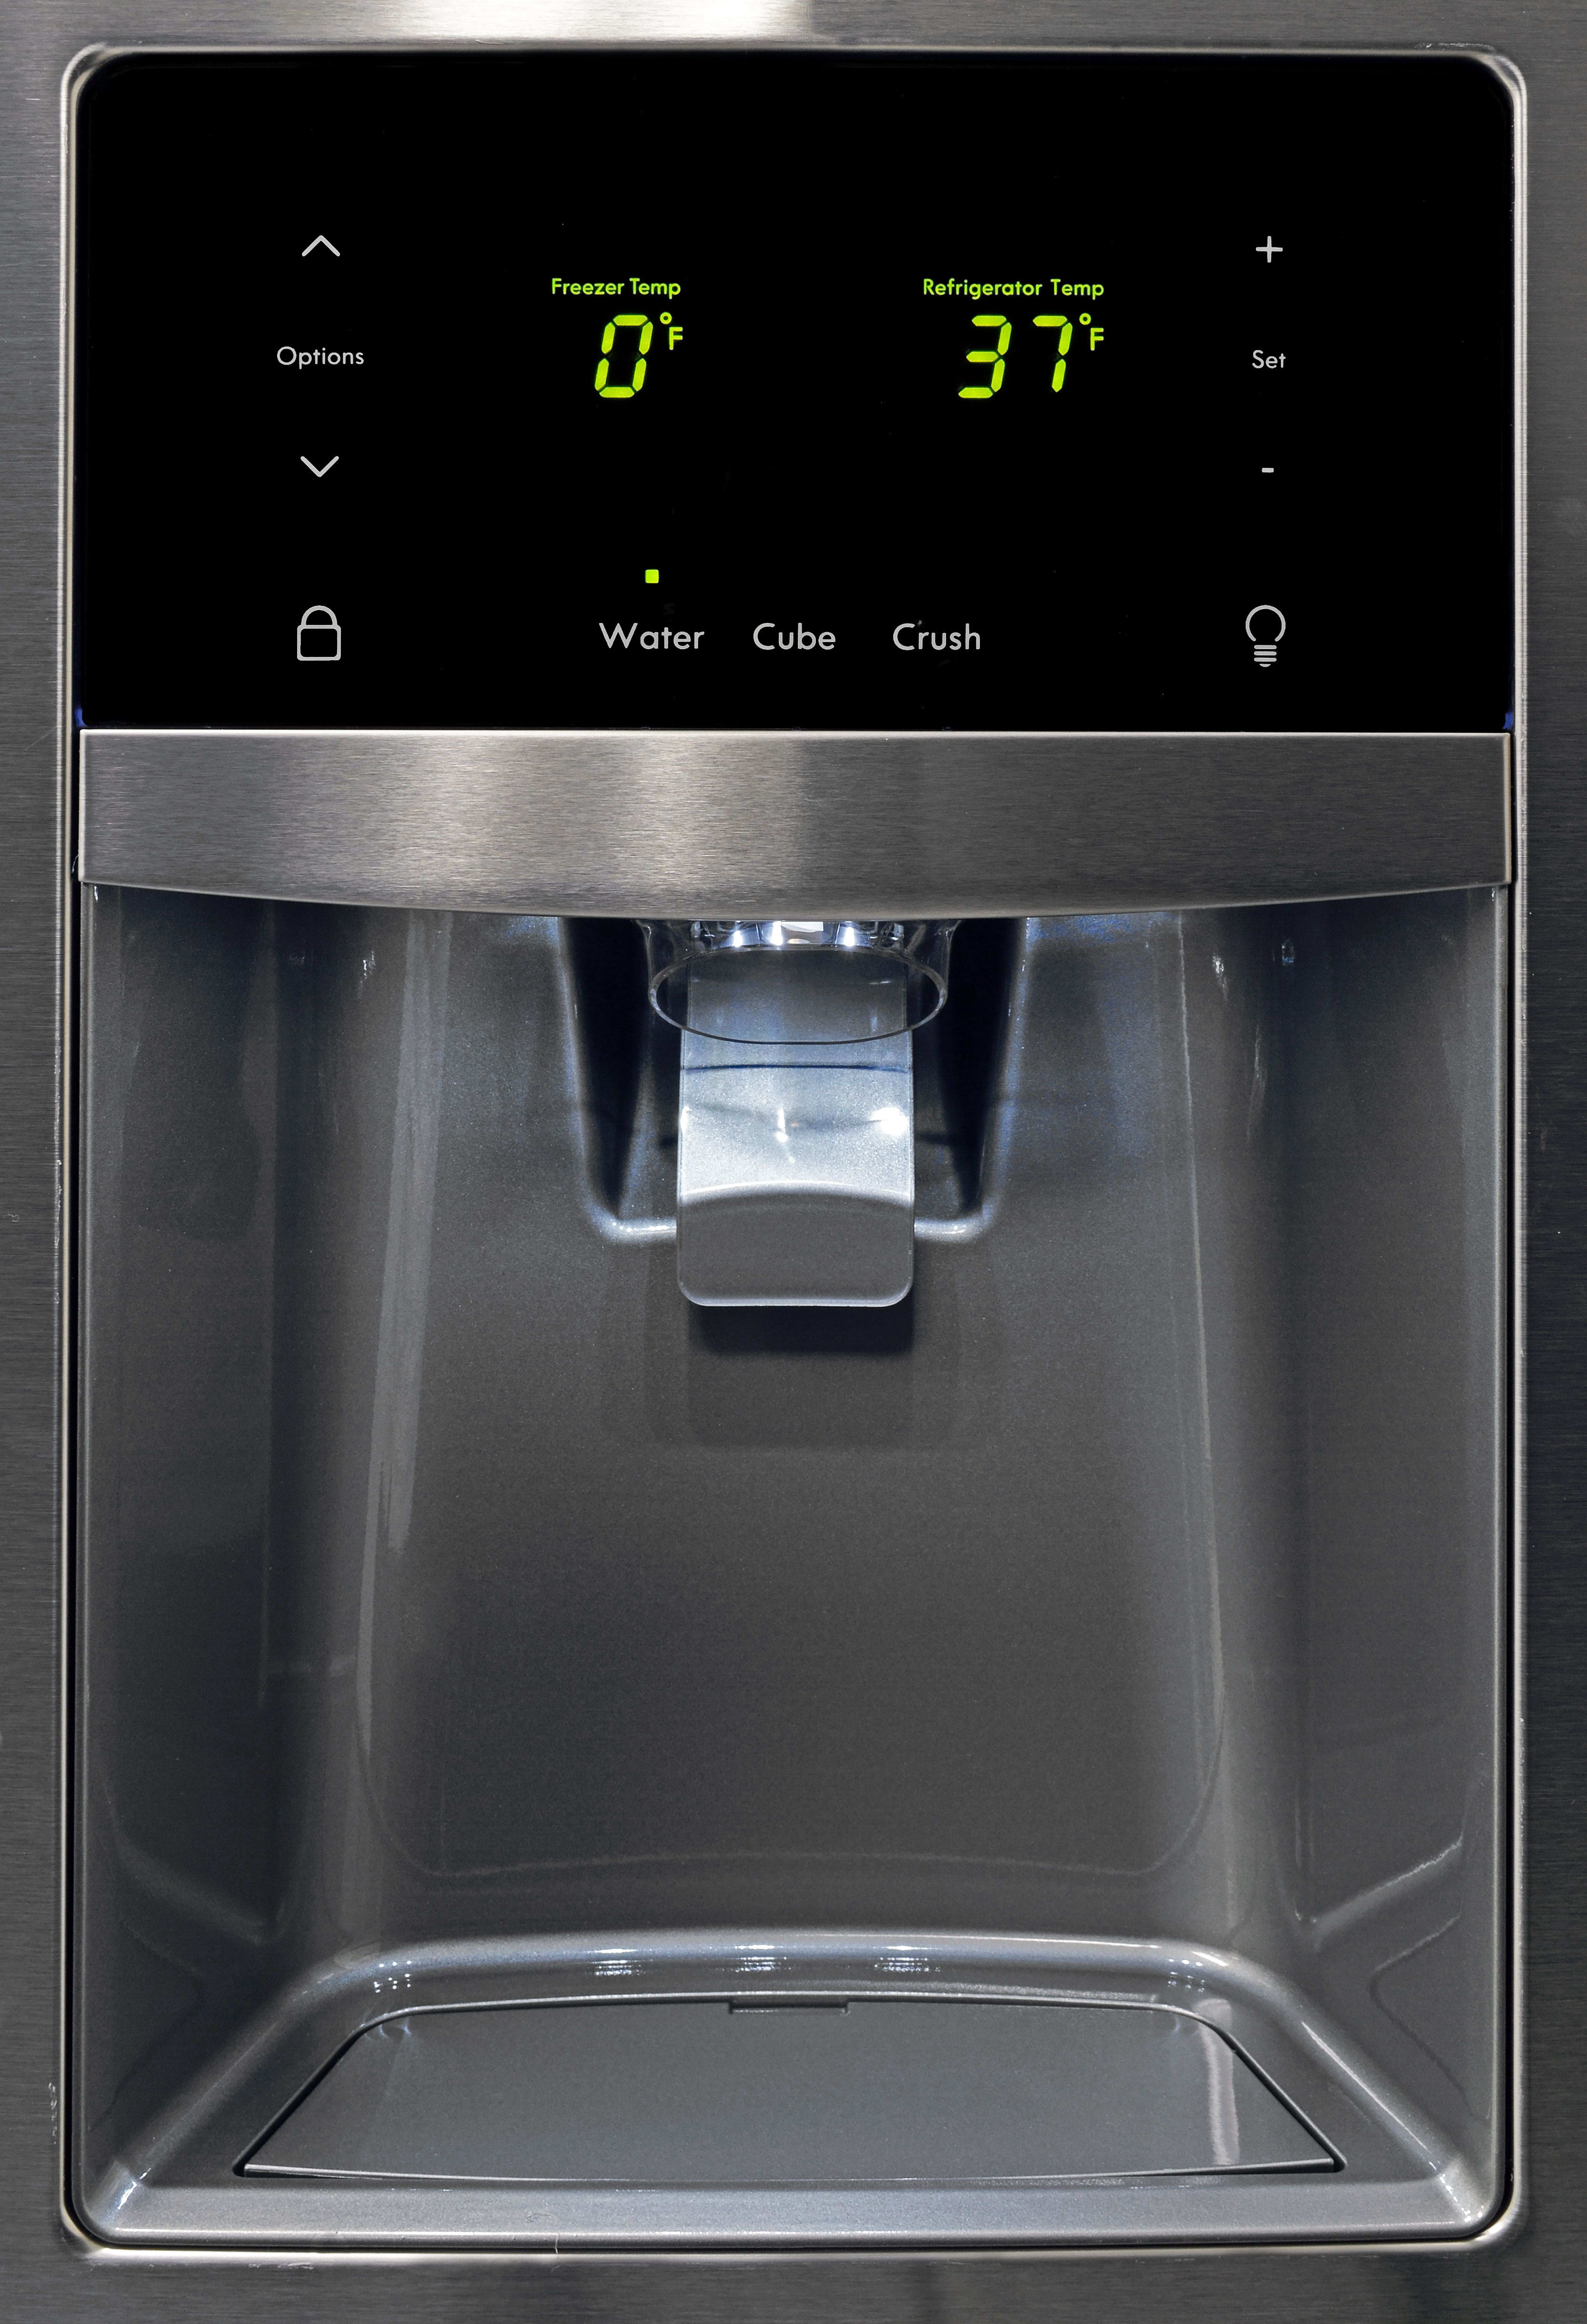 The Kenmore 70343's dispenser cavity is more than large enough to accommodate a standard drinking glass.